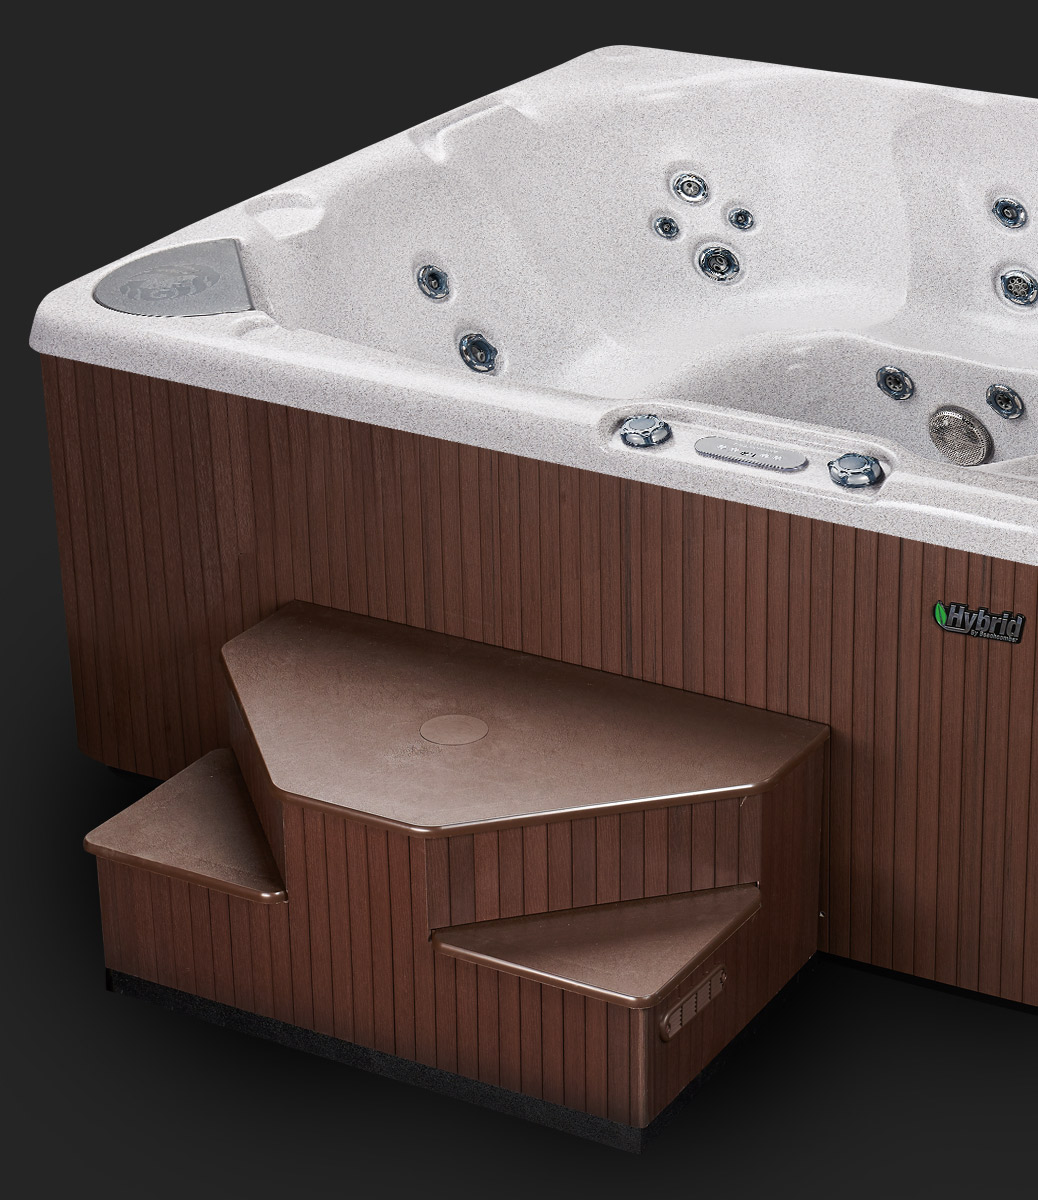 Beachcomber Hot Tubs Modèle 360